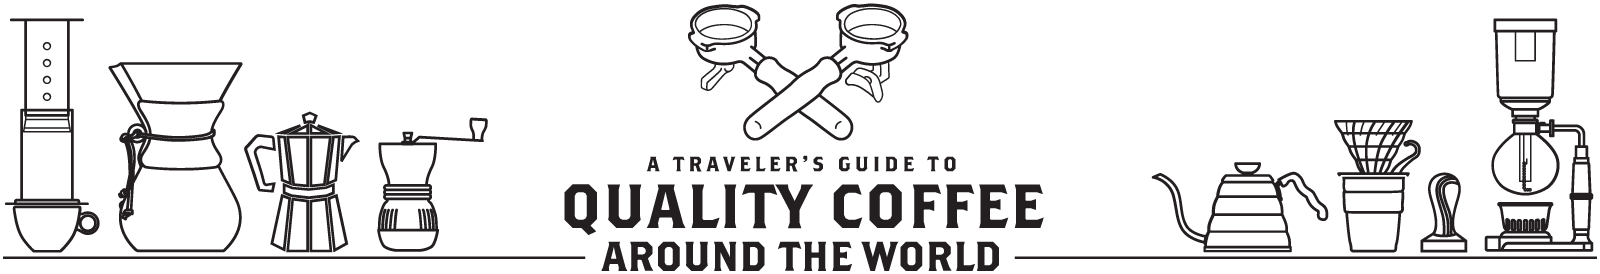 A Traveler's Guide to Quality Coffee Around the World